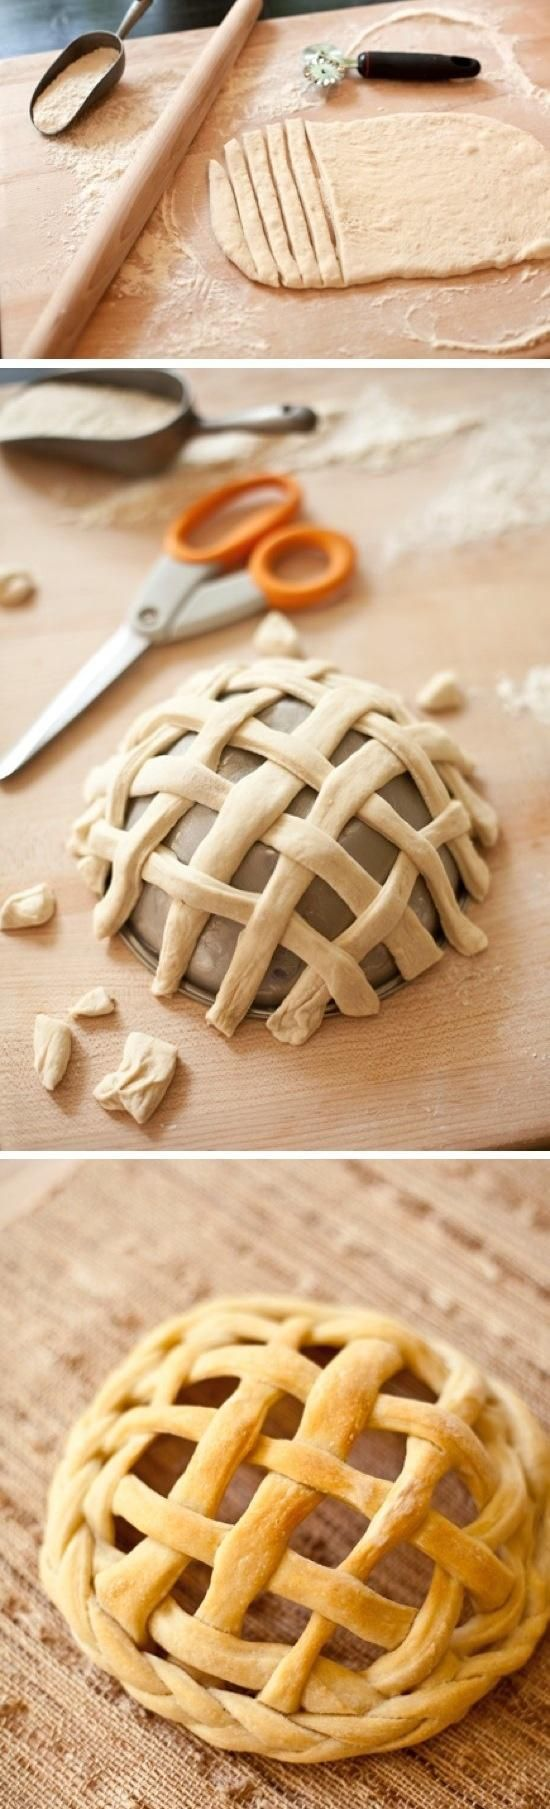 DIY Bread Basket ~ These would make for great individual salad bowl servings, or filled with snacks for a picnic or food buffet.